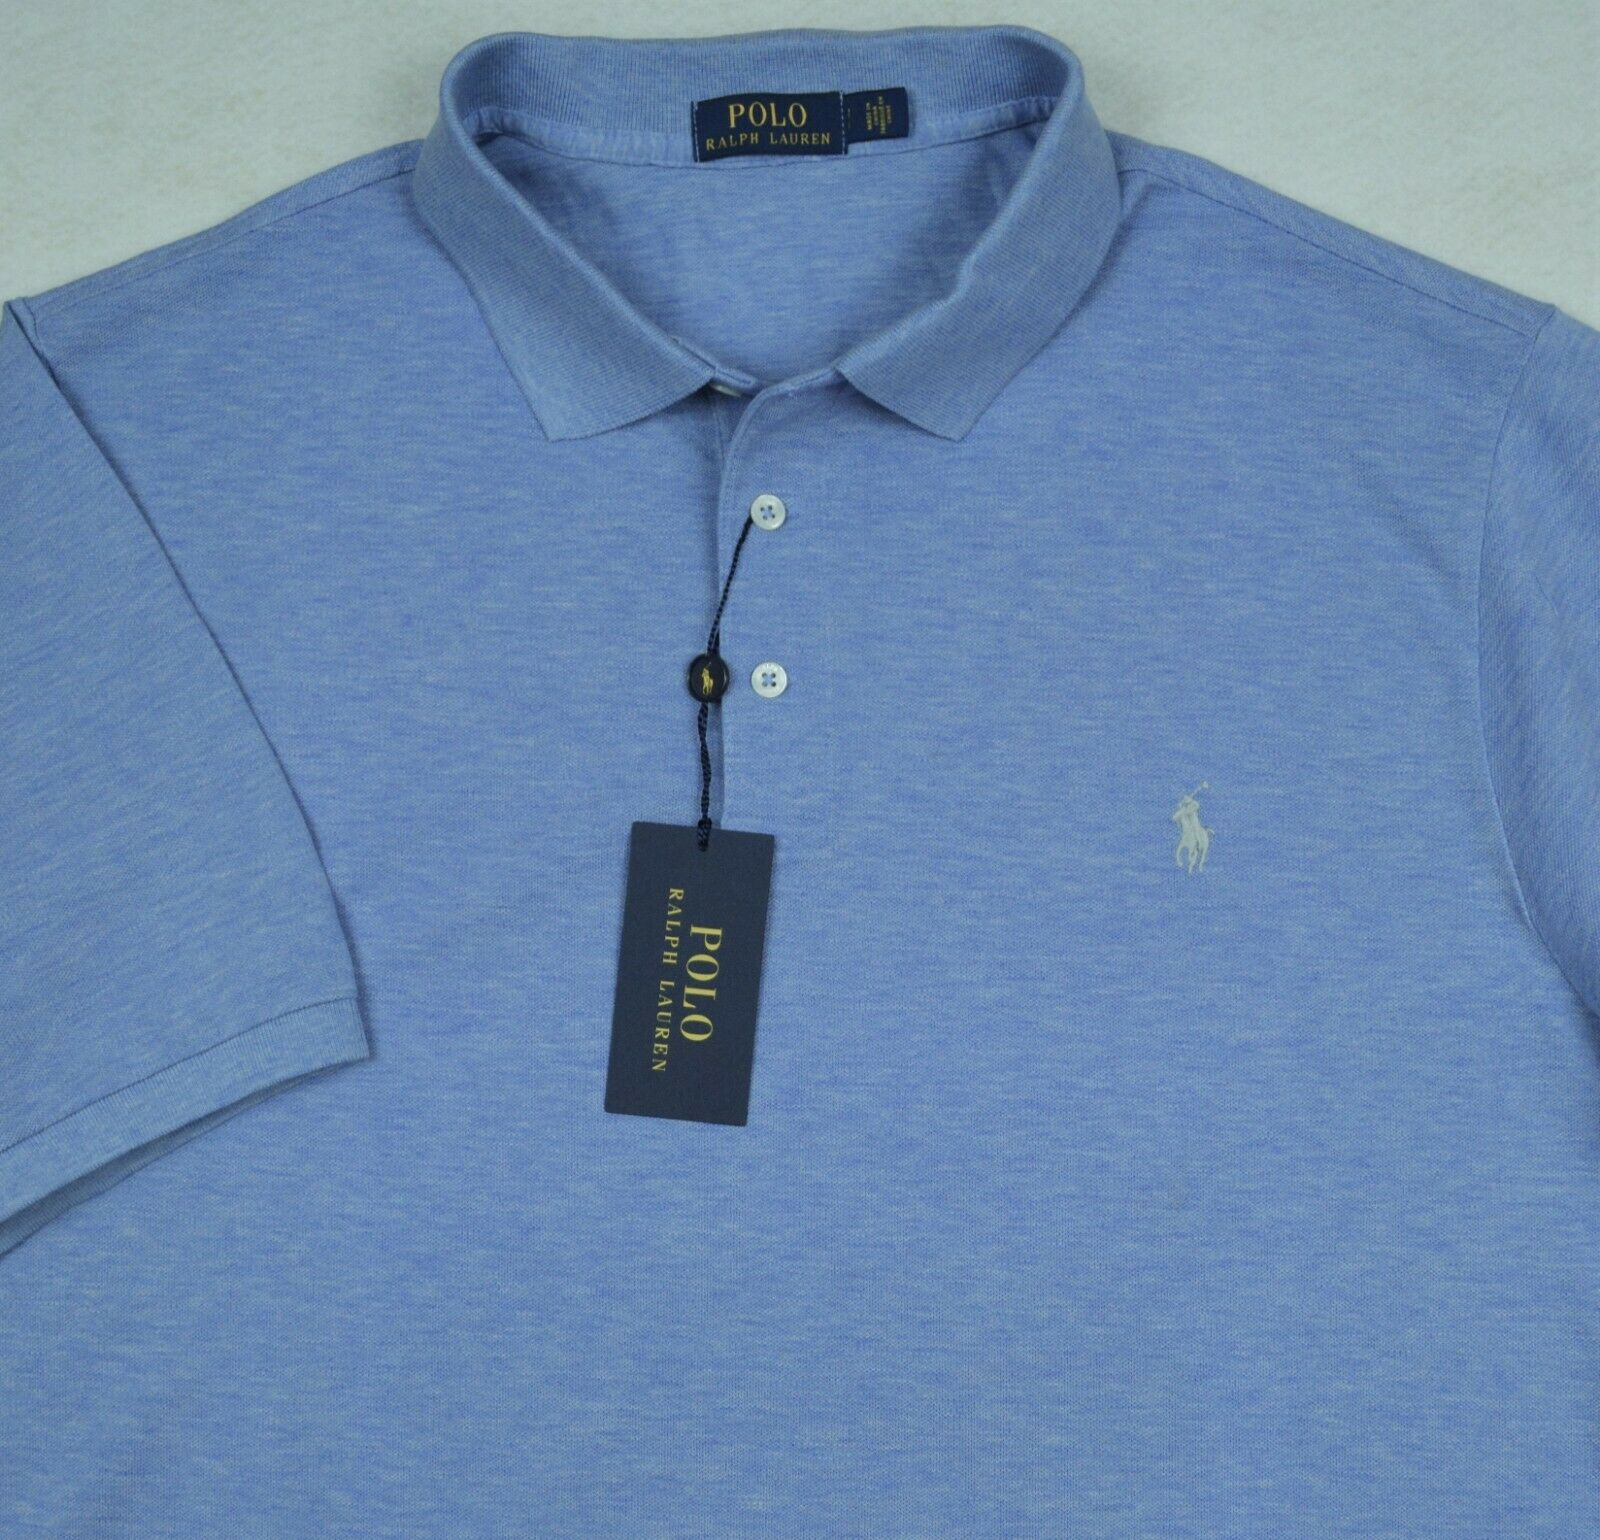 Polo Ralph Lauren Shirt bluee 3-Button Stretch Mesh 4XB 4X NWT